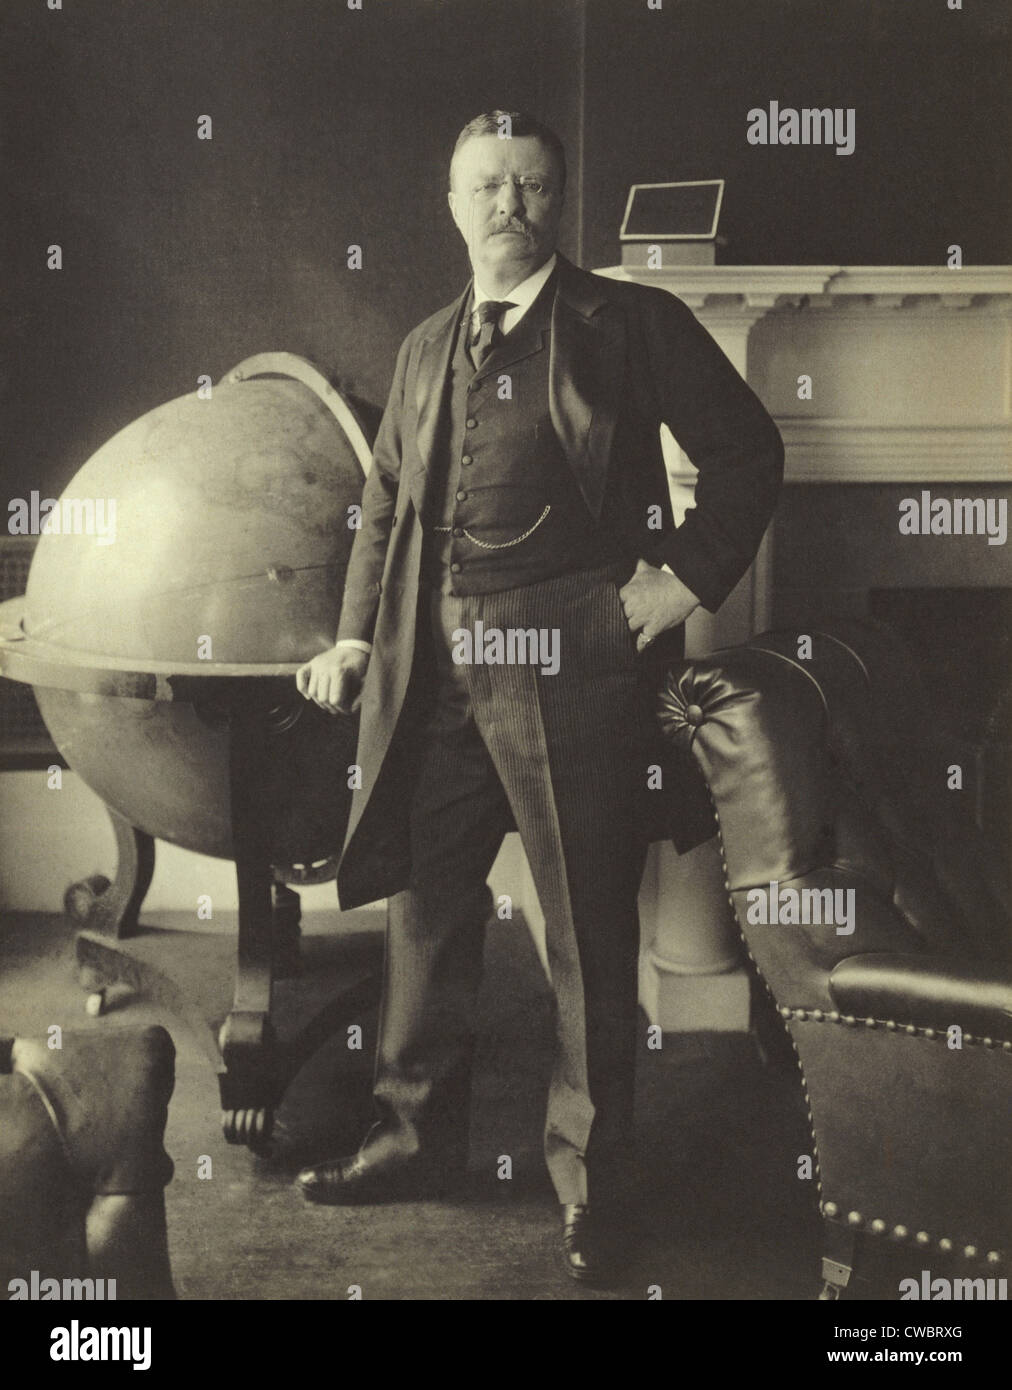 President Theodore Roosevelt (1858-1919), in 1903. The United States emerged as a recognized World Power during - Stock Image